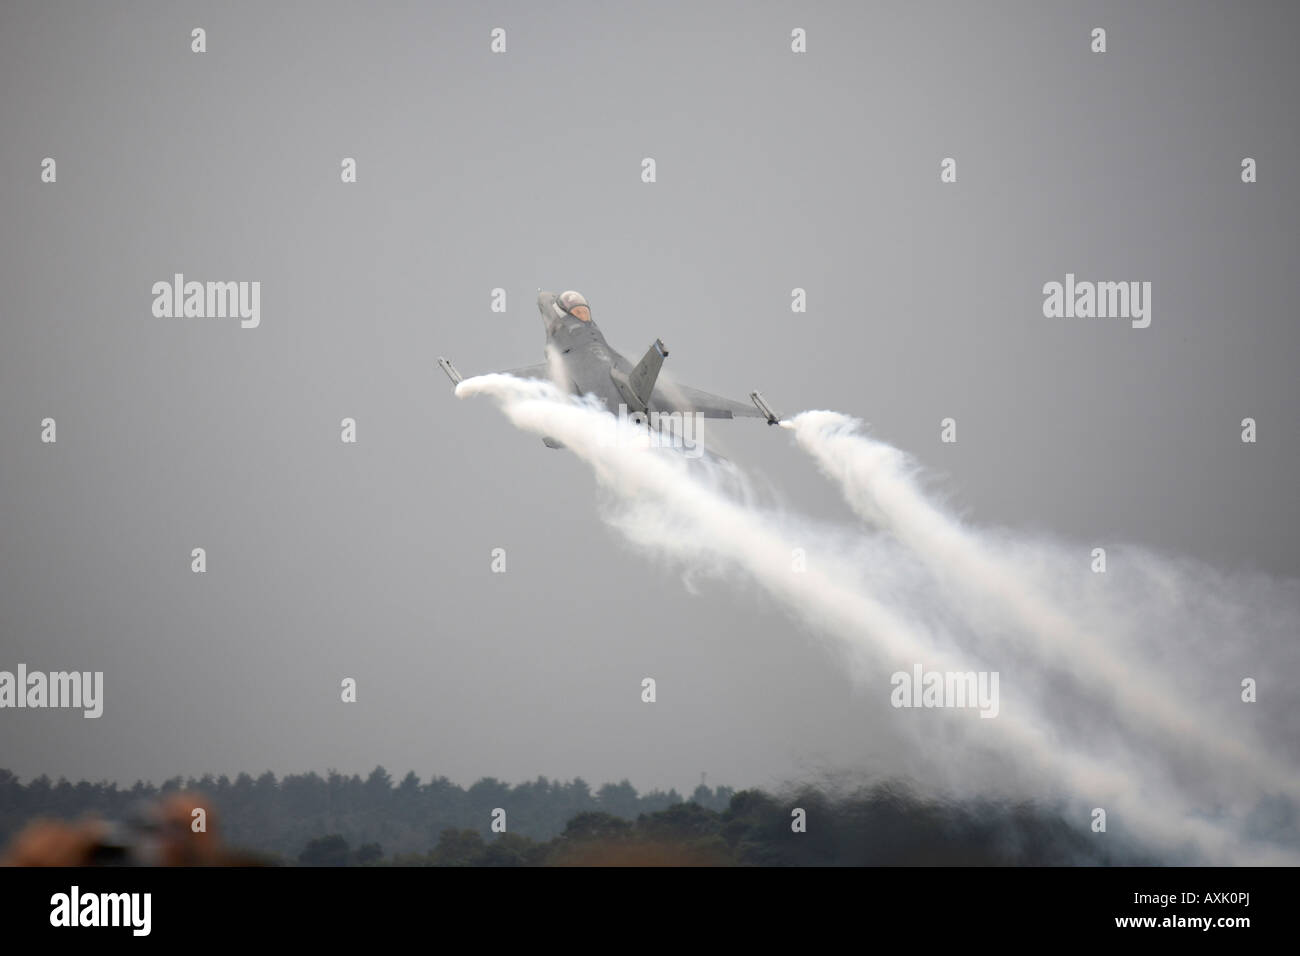 F 16 Fighting Falcon aircraft on flying display at Farnborough International Airshow July 2006 Stock Photo